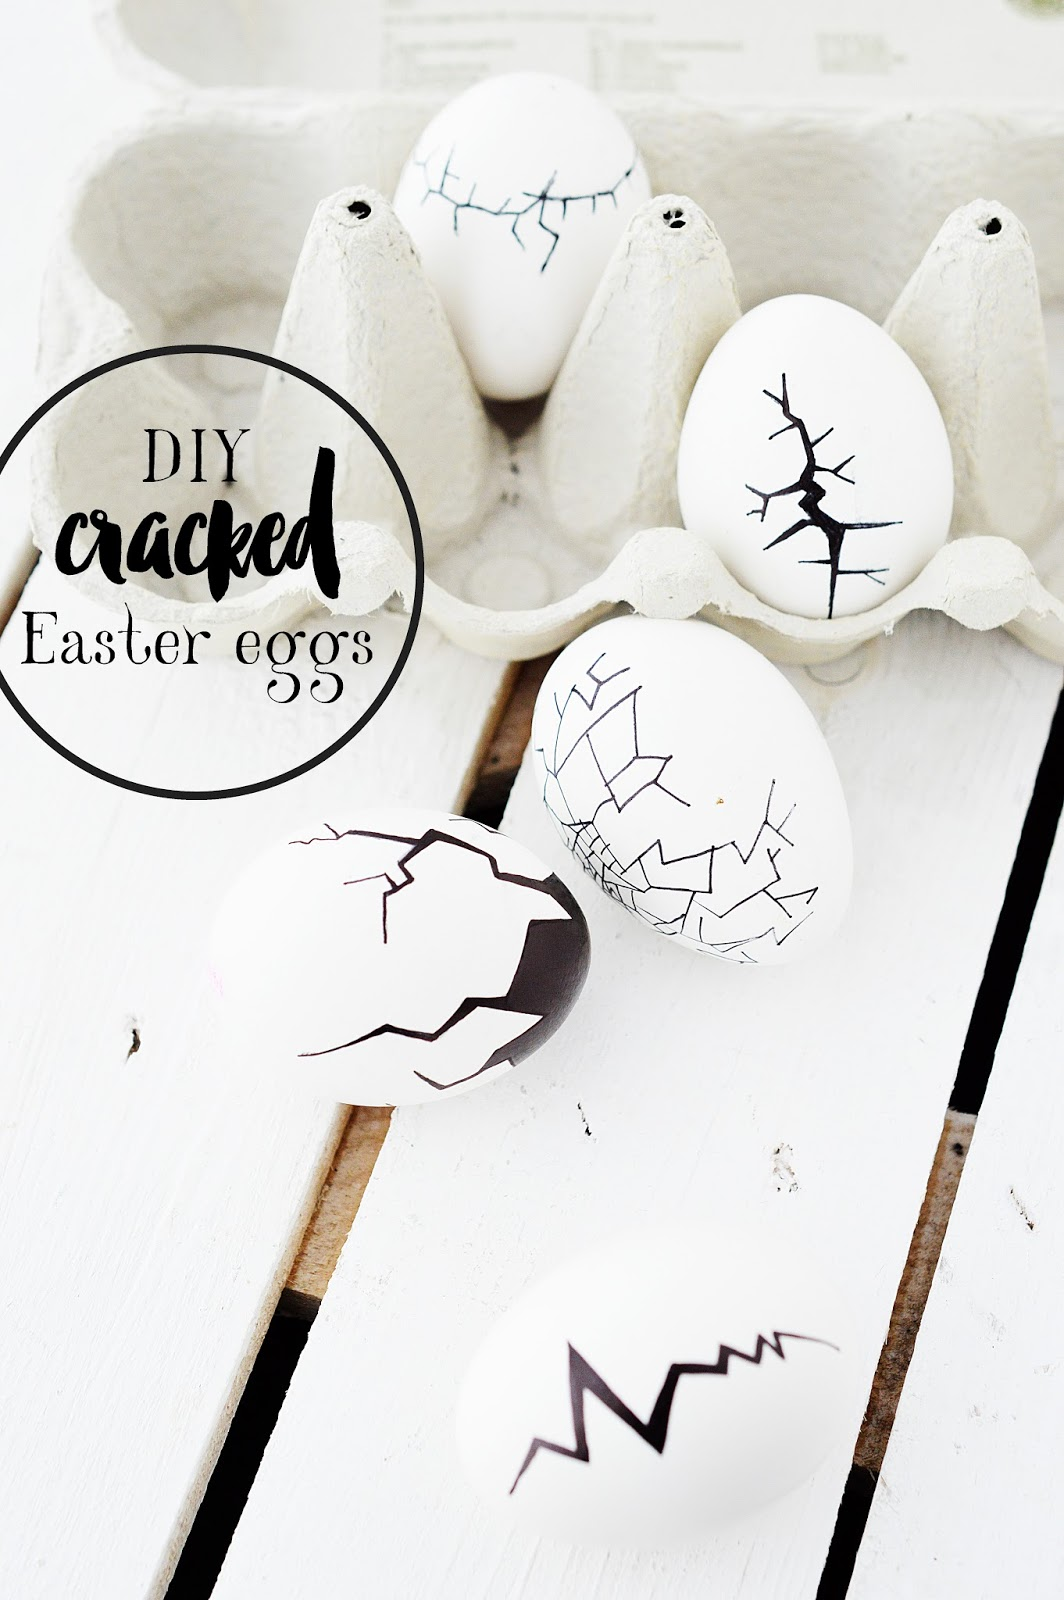 cracks painted onto a bunch  of Easter eggs using a marker